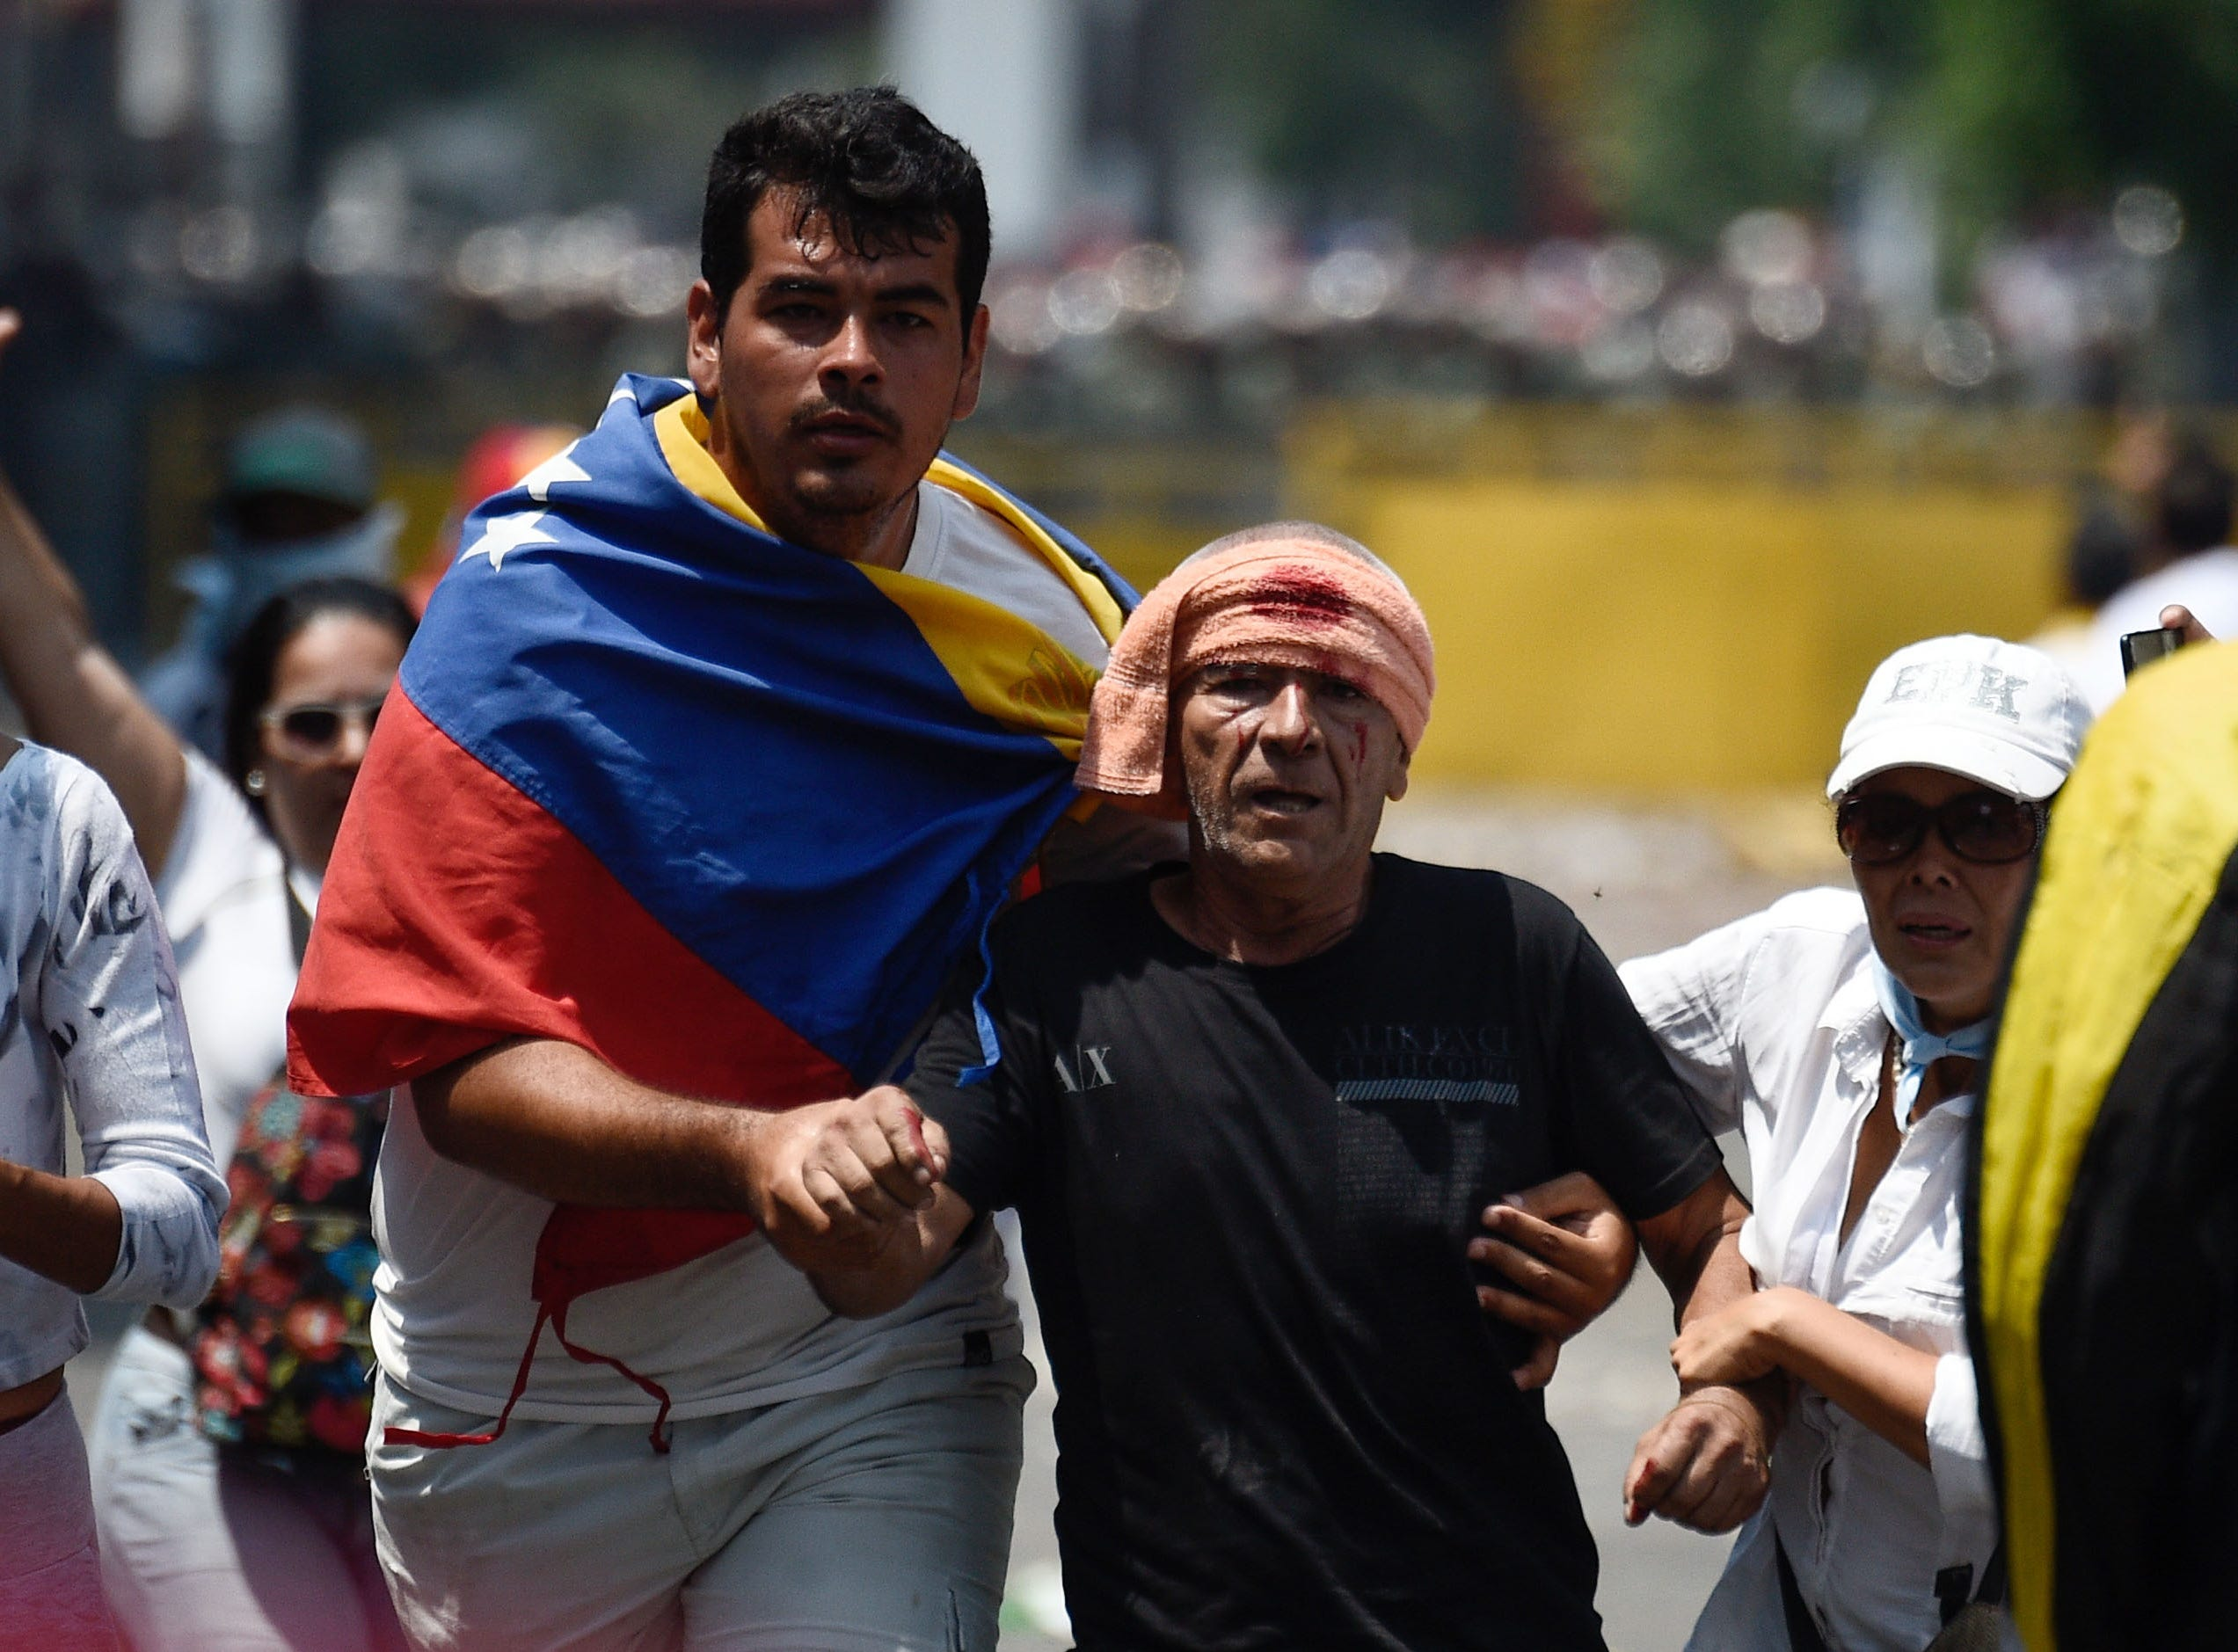 A demonstrator assists an injured protester during an opposition demonstration in San Antonio del Tachira, Venezuela on Feb. 23, 2019.